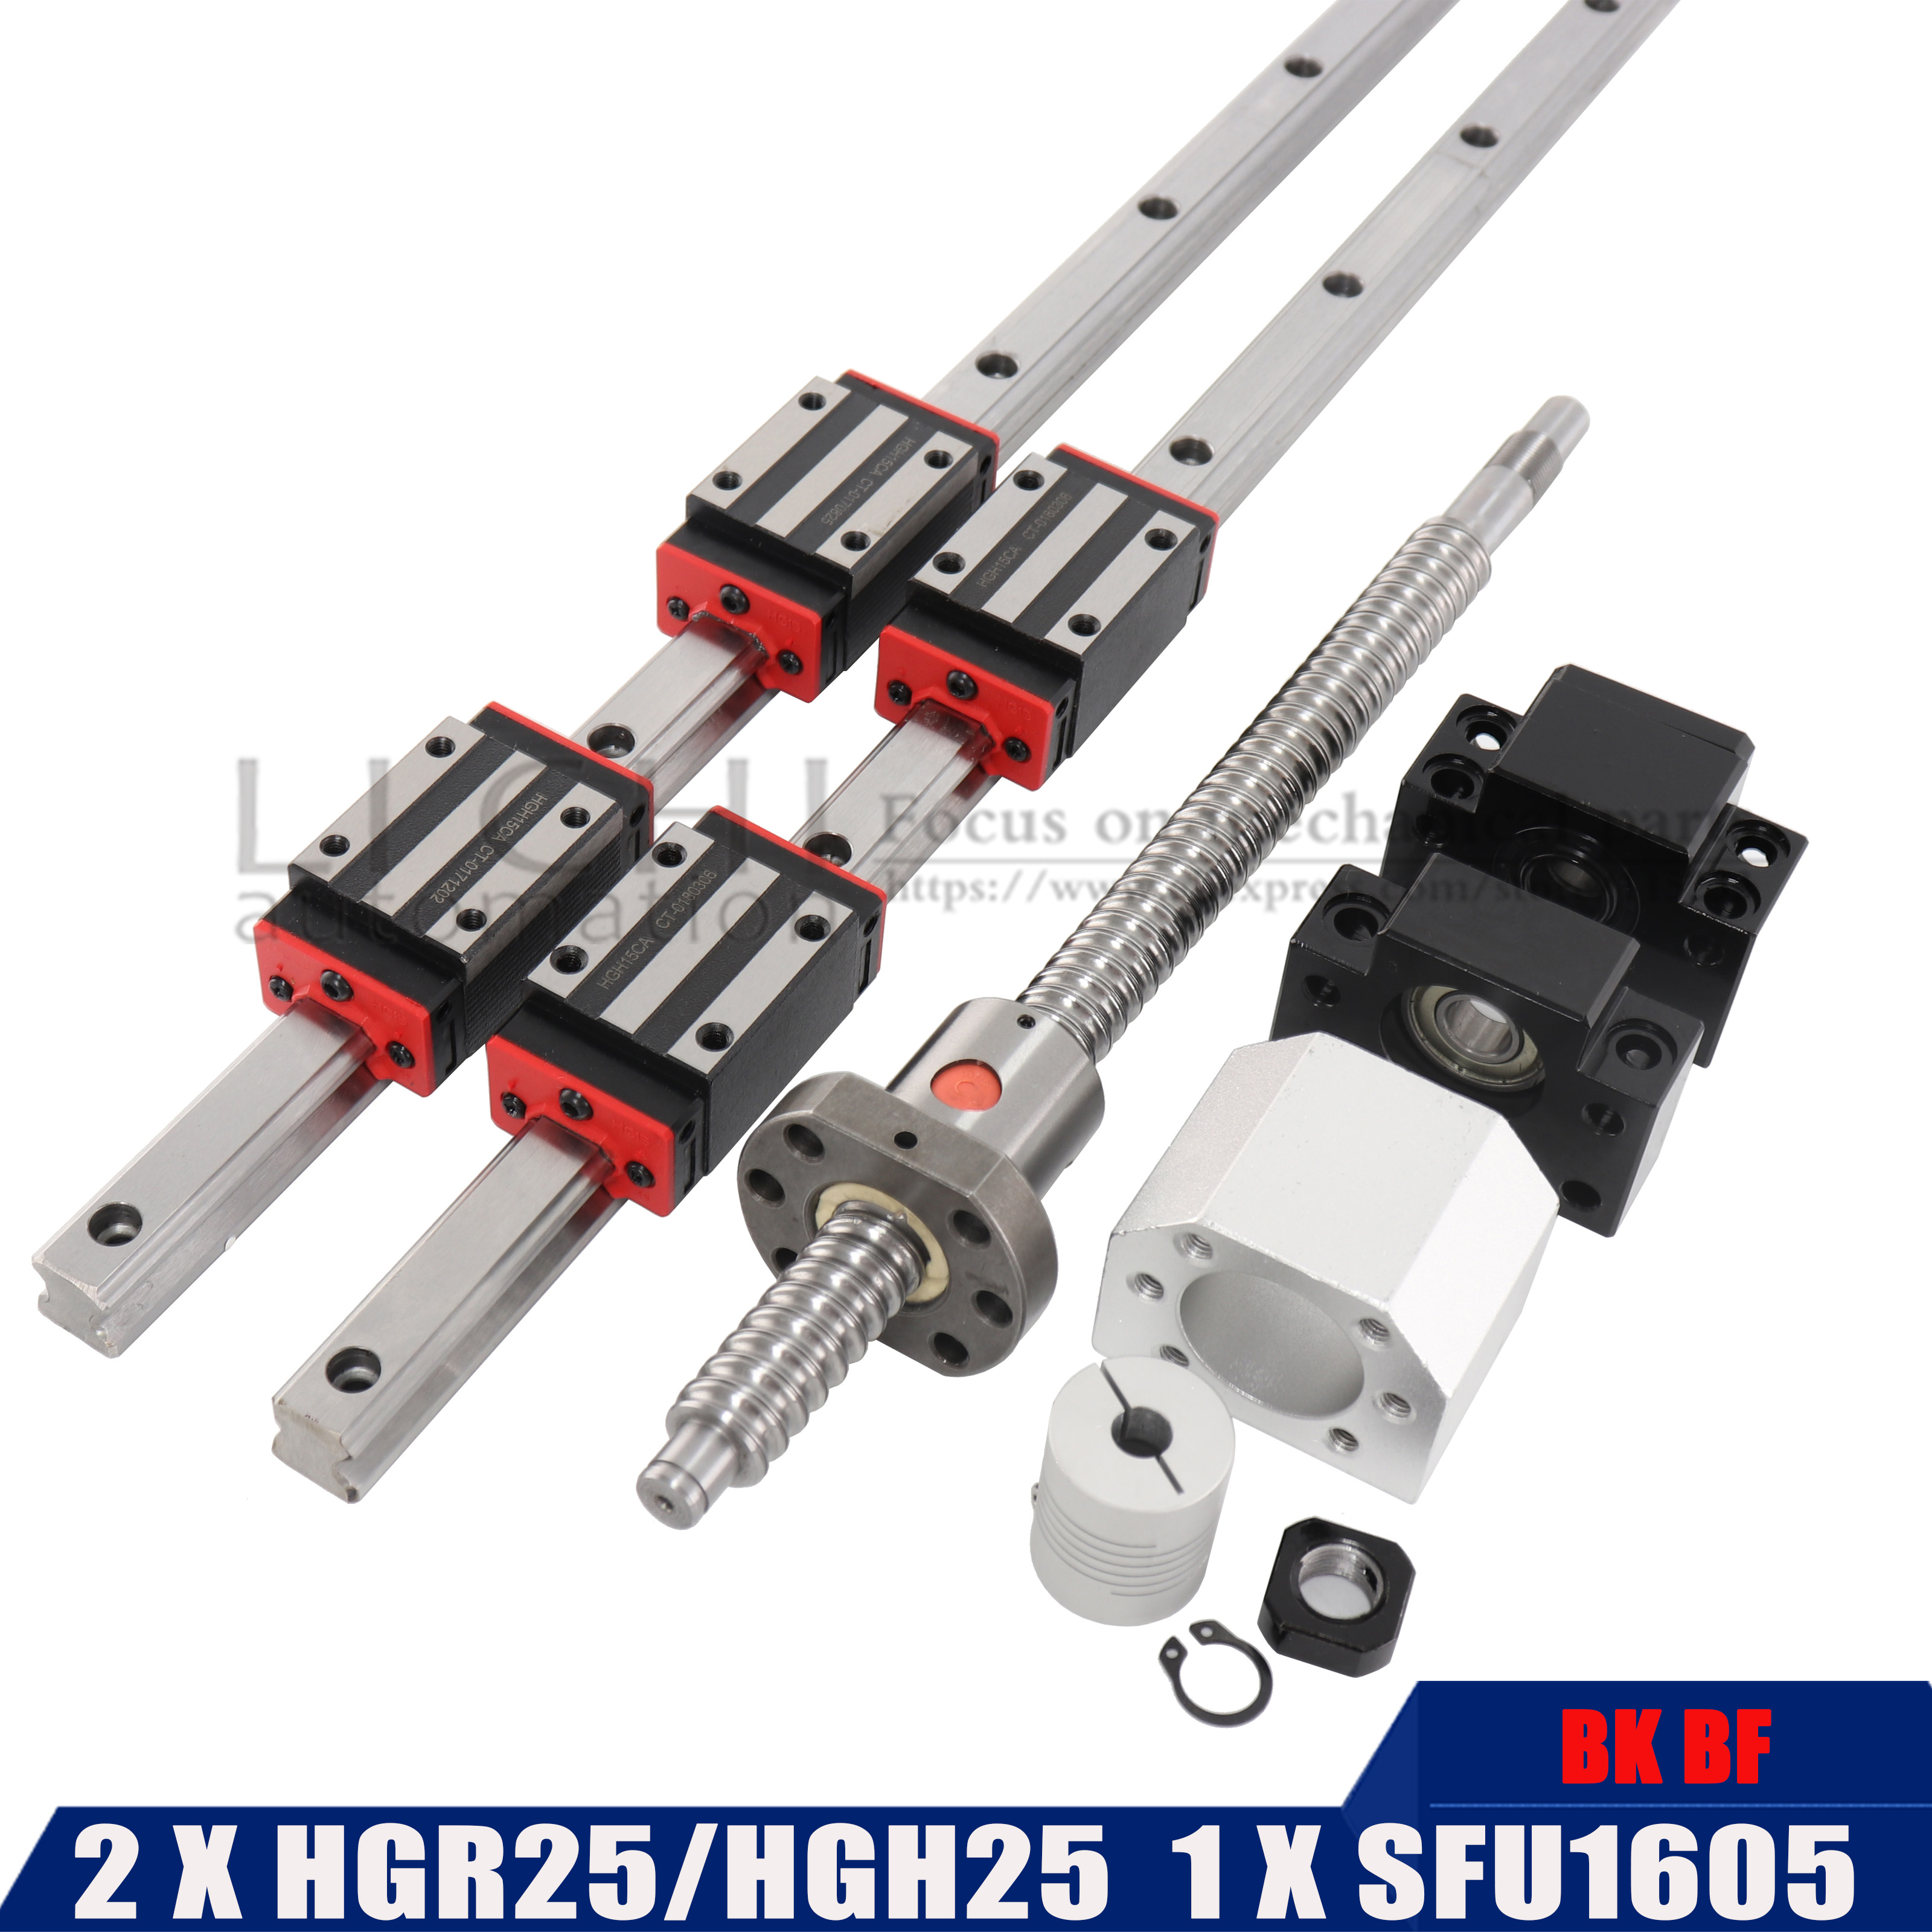 HGH25 +1 SET <font><b>SFU1605</b></font>+<font><b>4</b></font> HGH25CA /hgw25cc Linear guide Shaft 1100mm Length Optical image